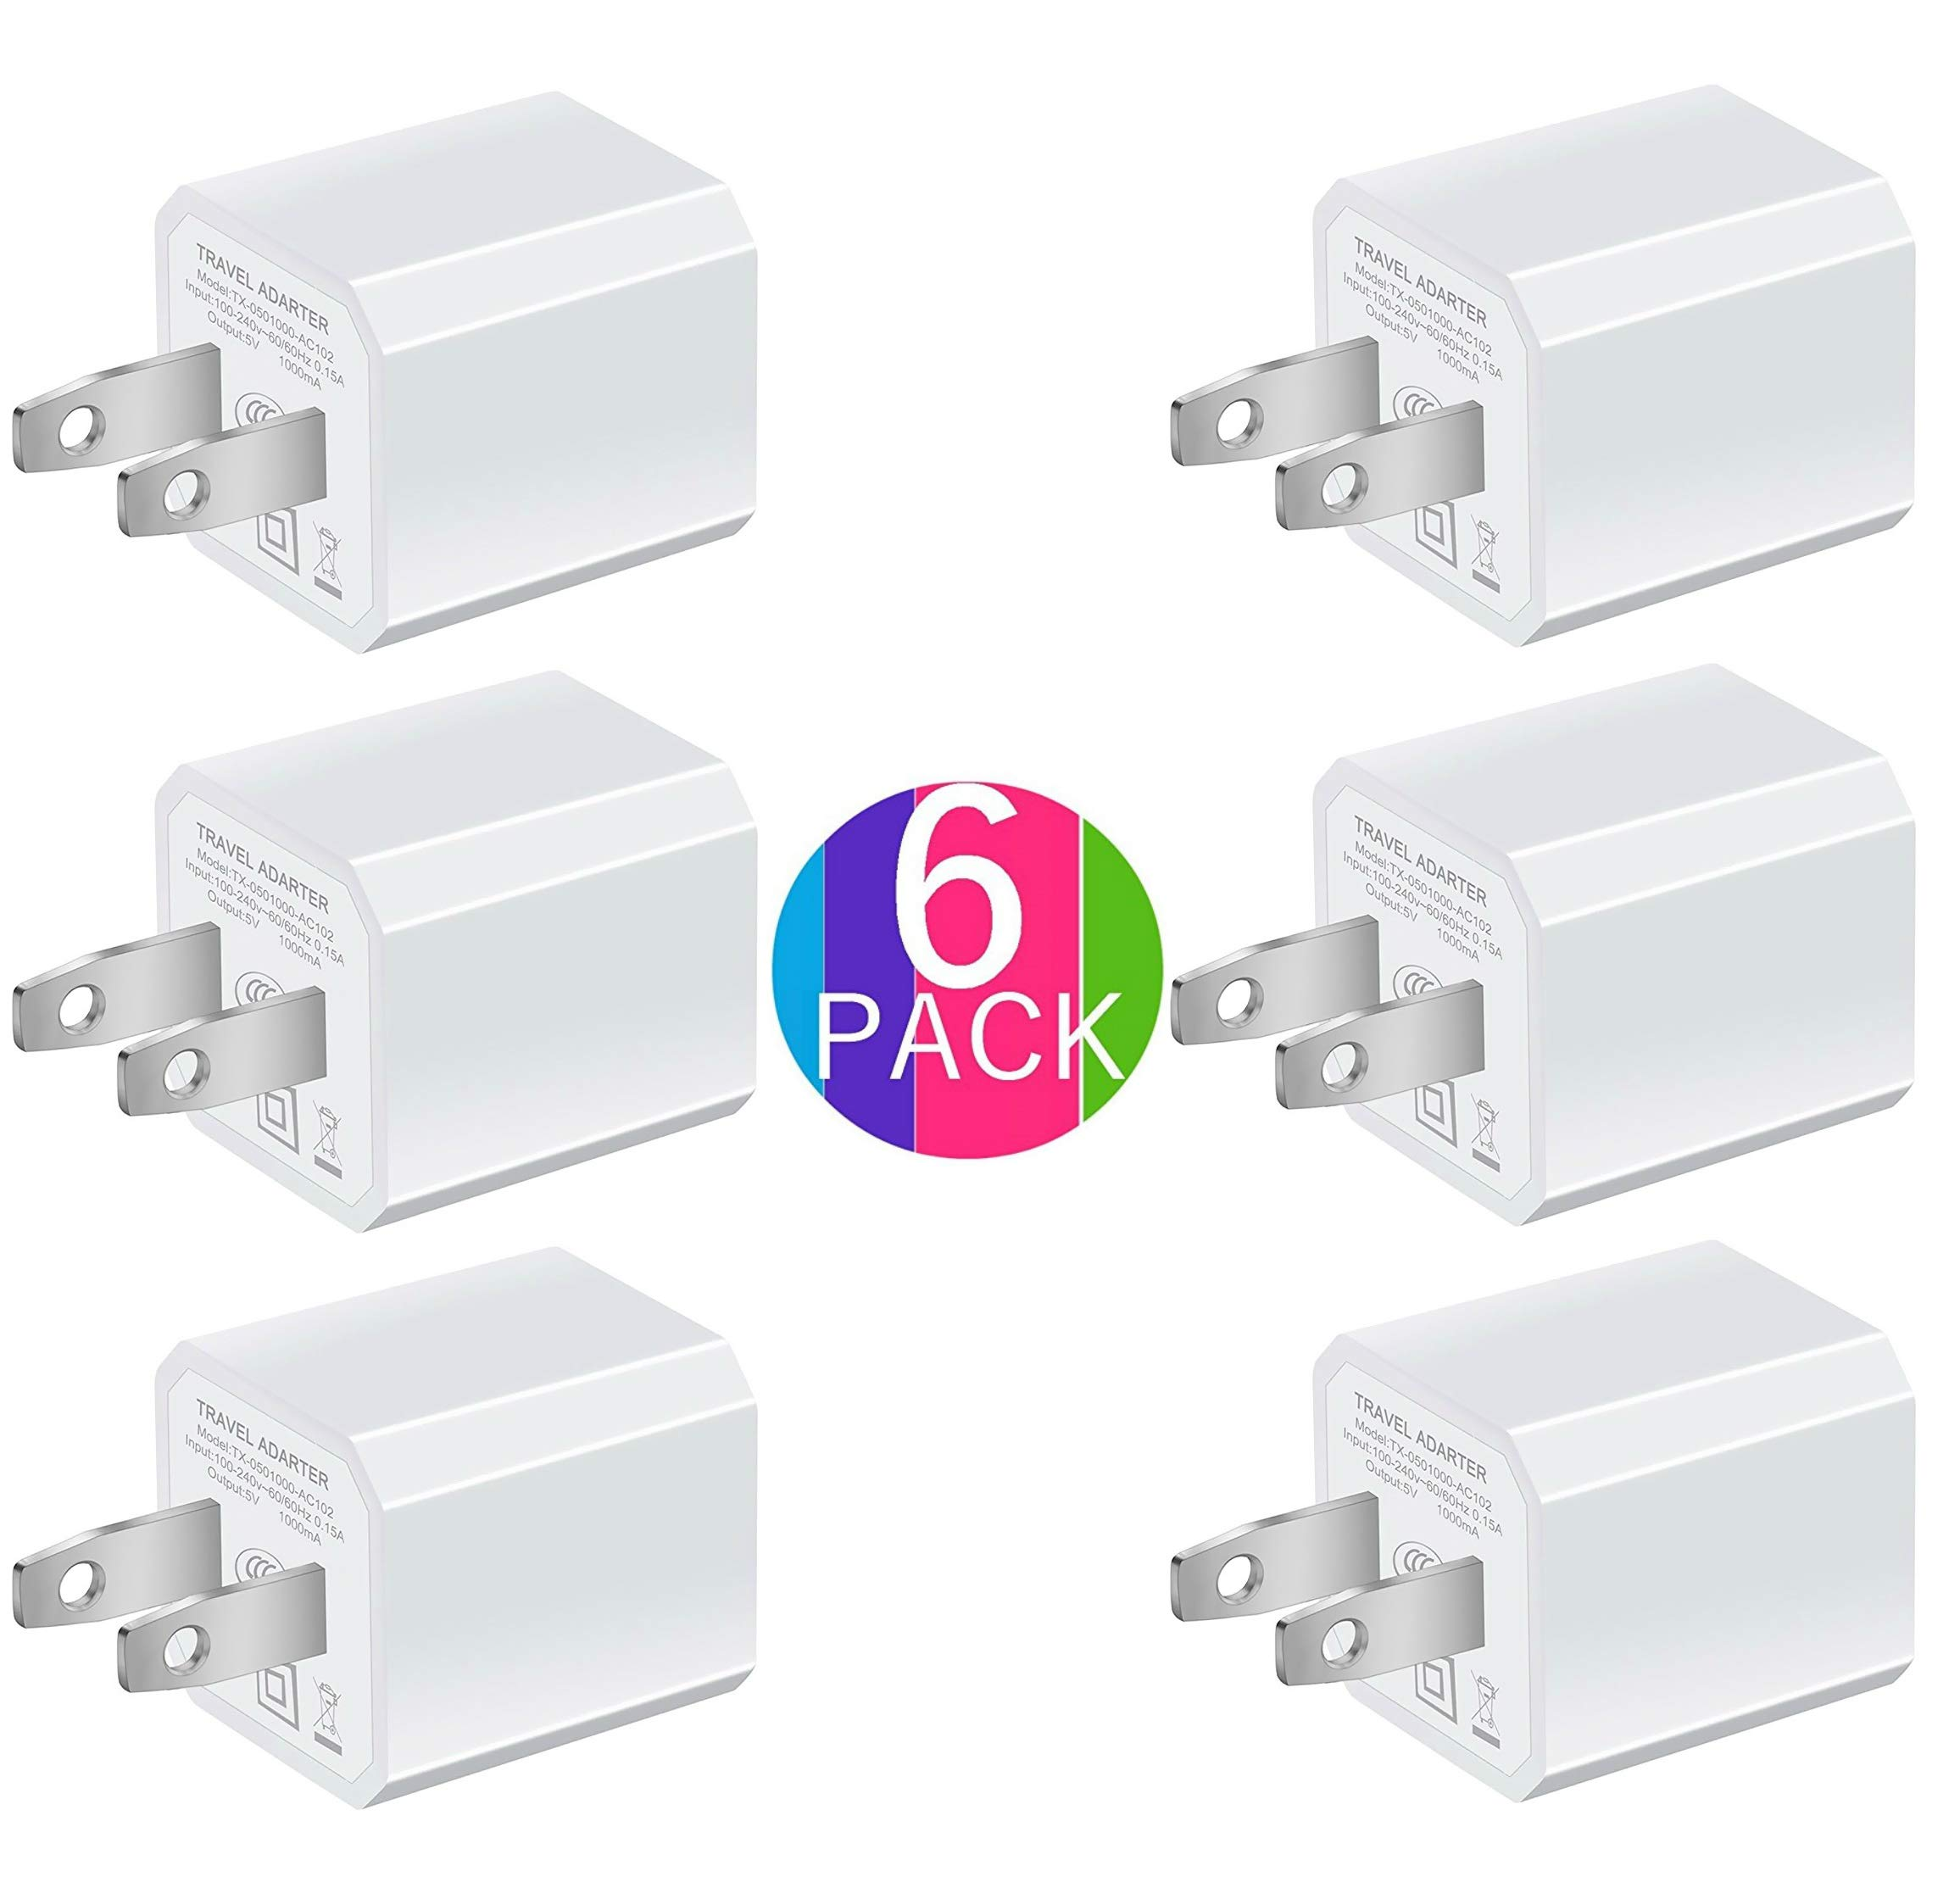 Boost Portable 5V USB Charger [6-Pack] USB Wall Charger for iPhone, Rapid 1.0A Output Compatible for iPhone iPad iPod Google Pixel Nexus HTC LG Nokia- White (Family Bundle)